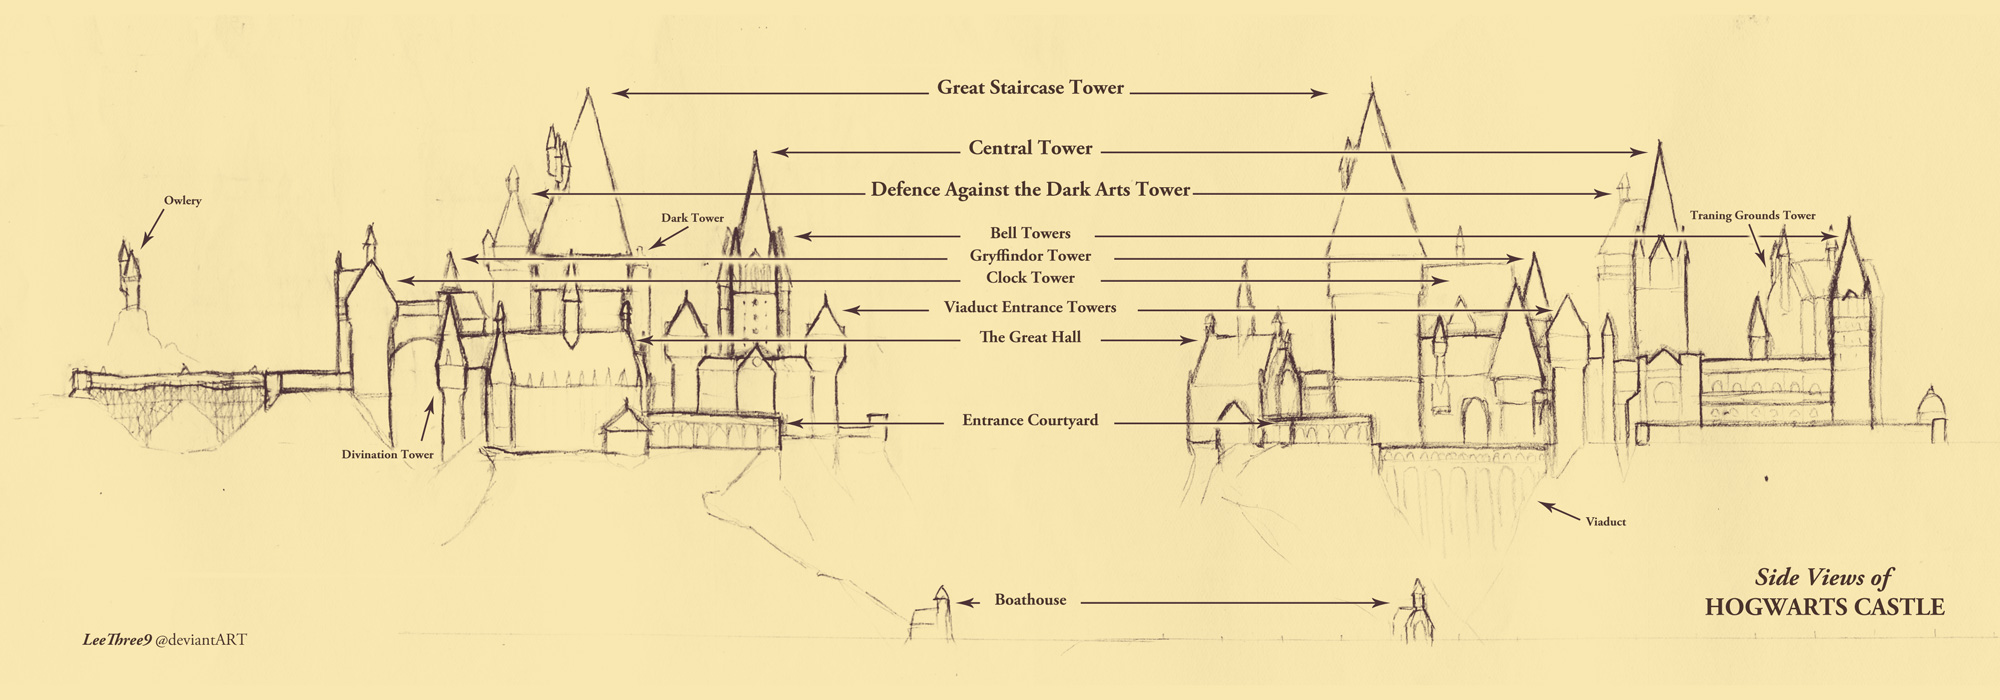 Side Views Of Hogwarts Castle By Leethree9 On Deviantart